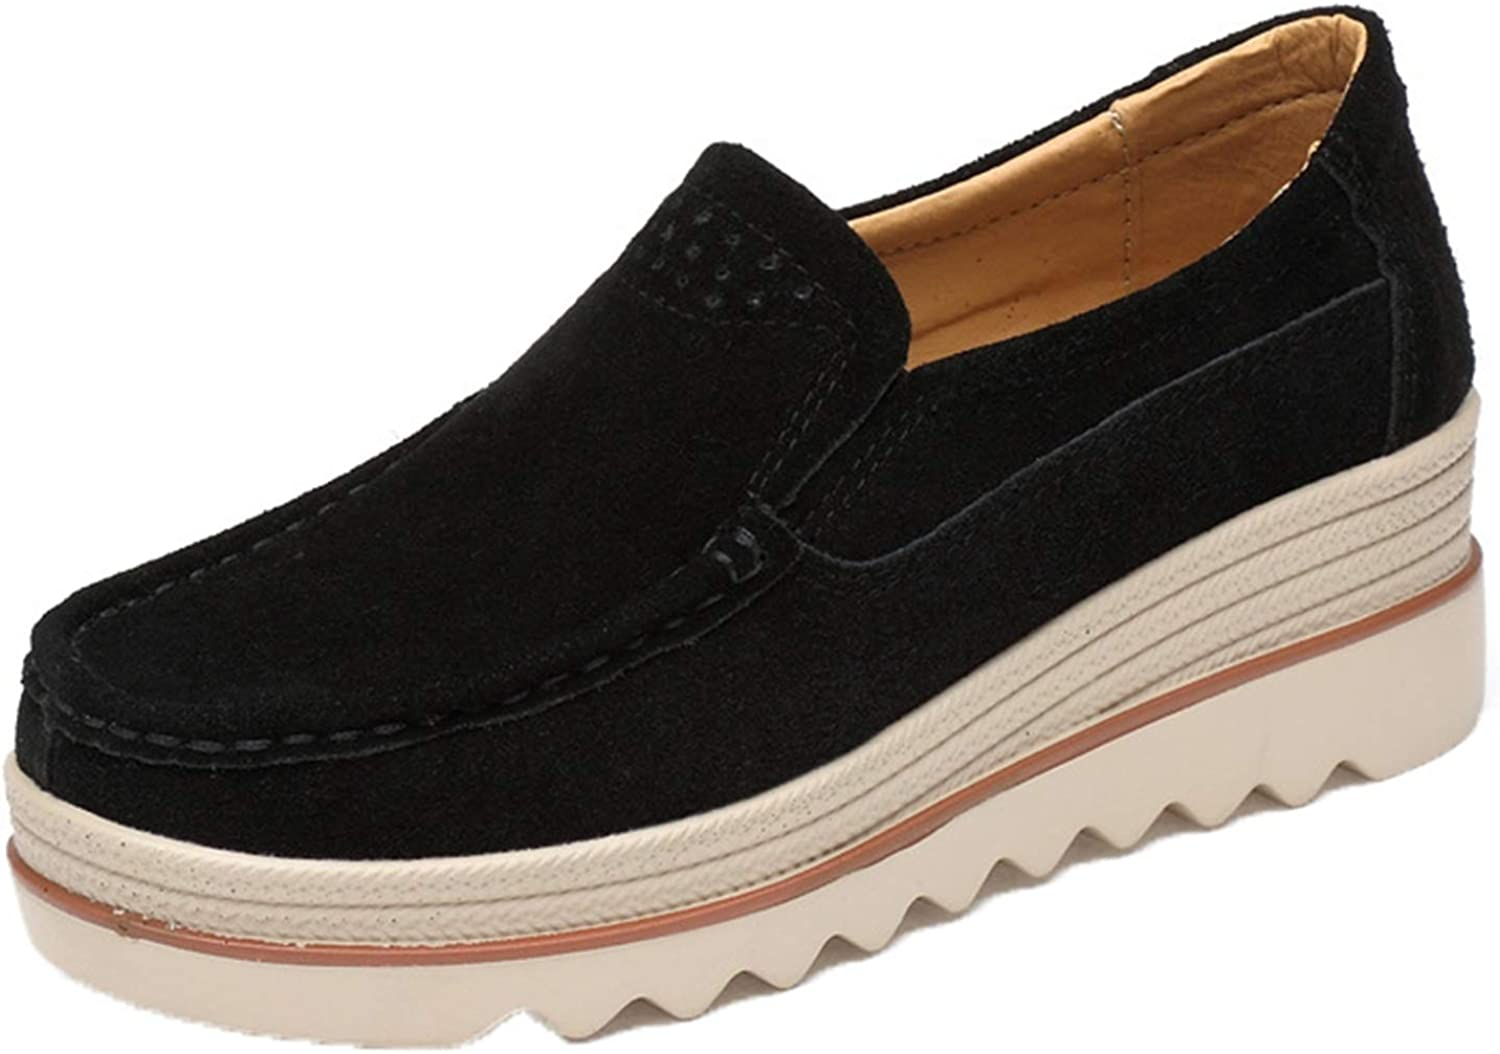 Generic2 Max 87% OFF Loafers Superior for Women Solid L Color Leather Wearable Nubuck